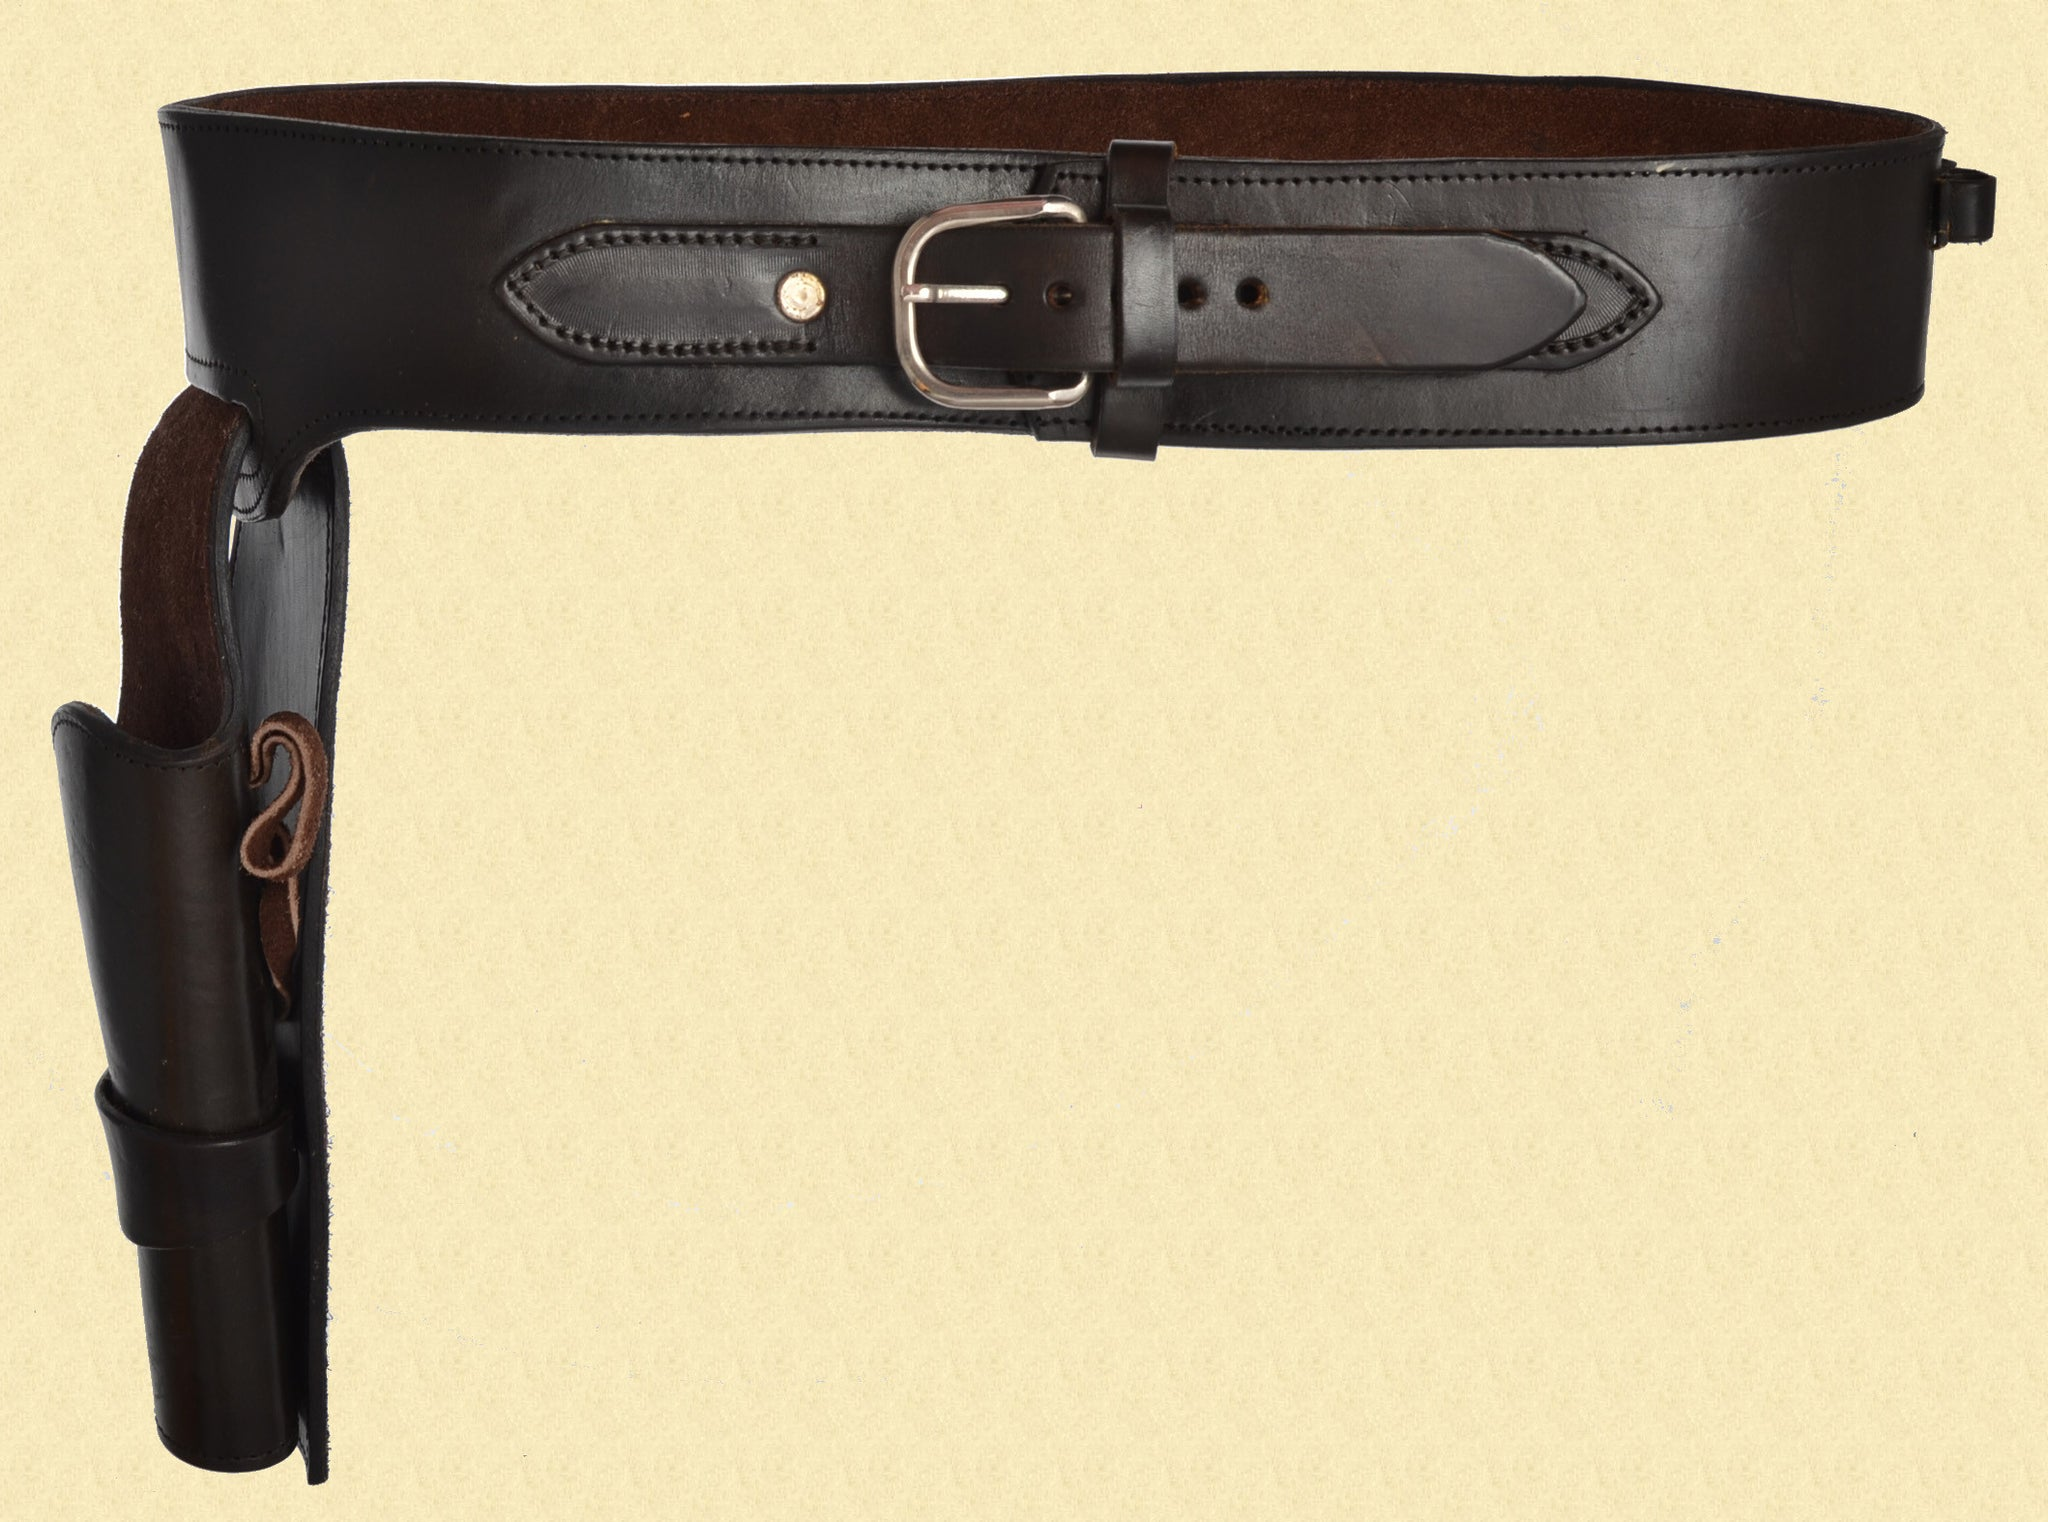 LEATHER COLT SAA BELT RIG